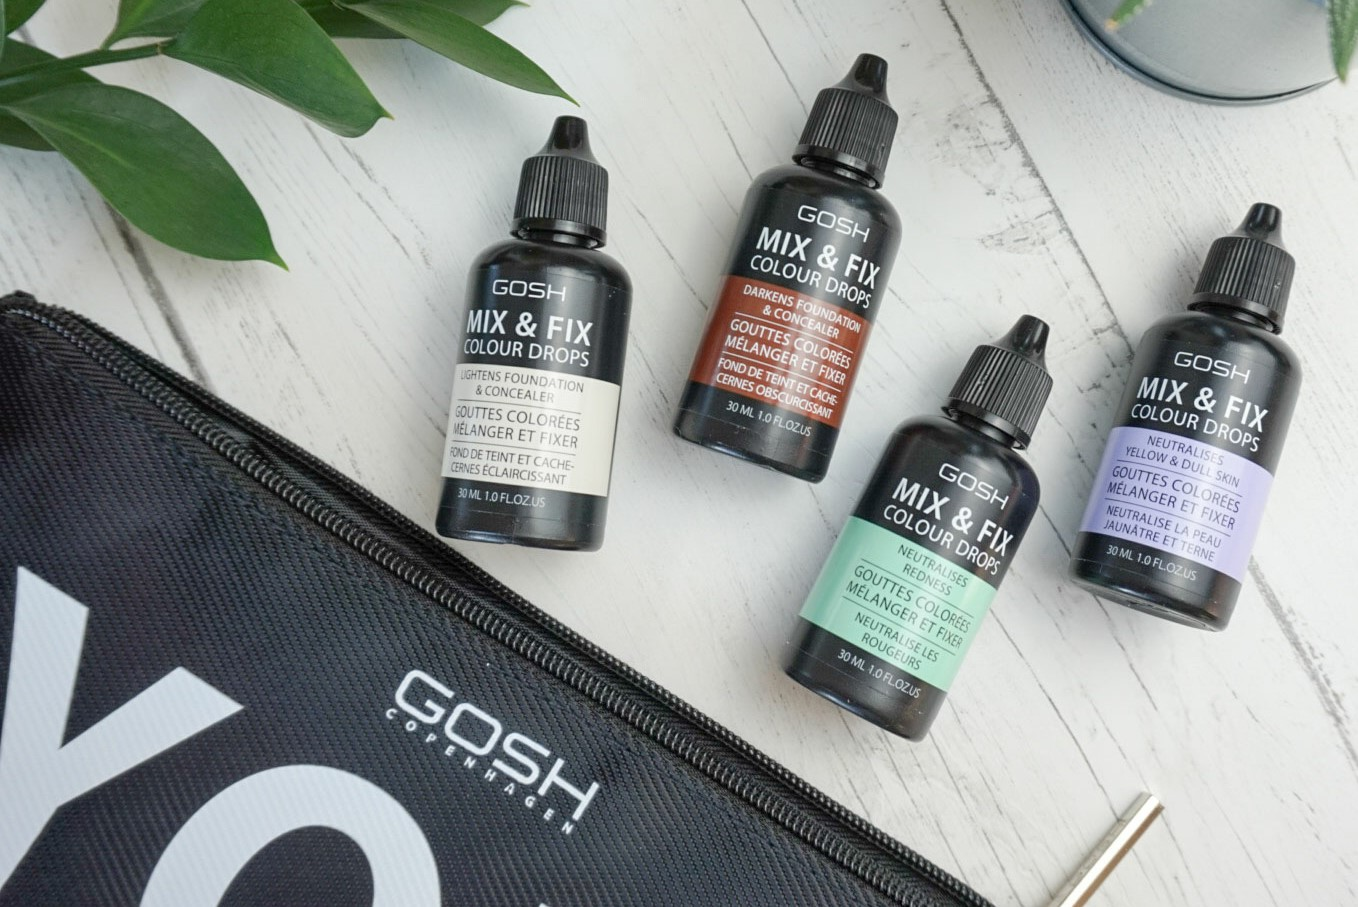 Beauty | New From GOSH - Mix & Fix Colour Drops